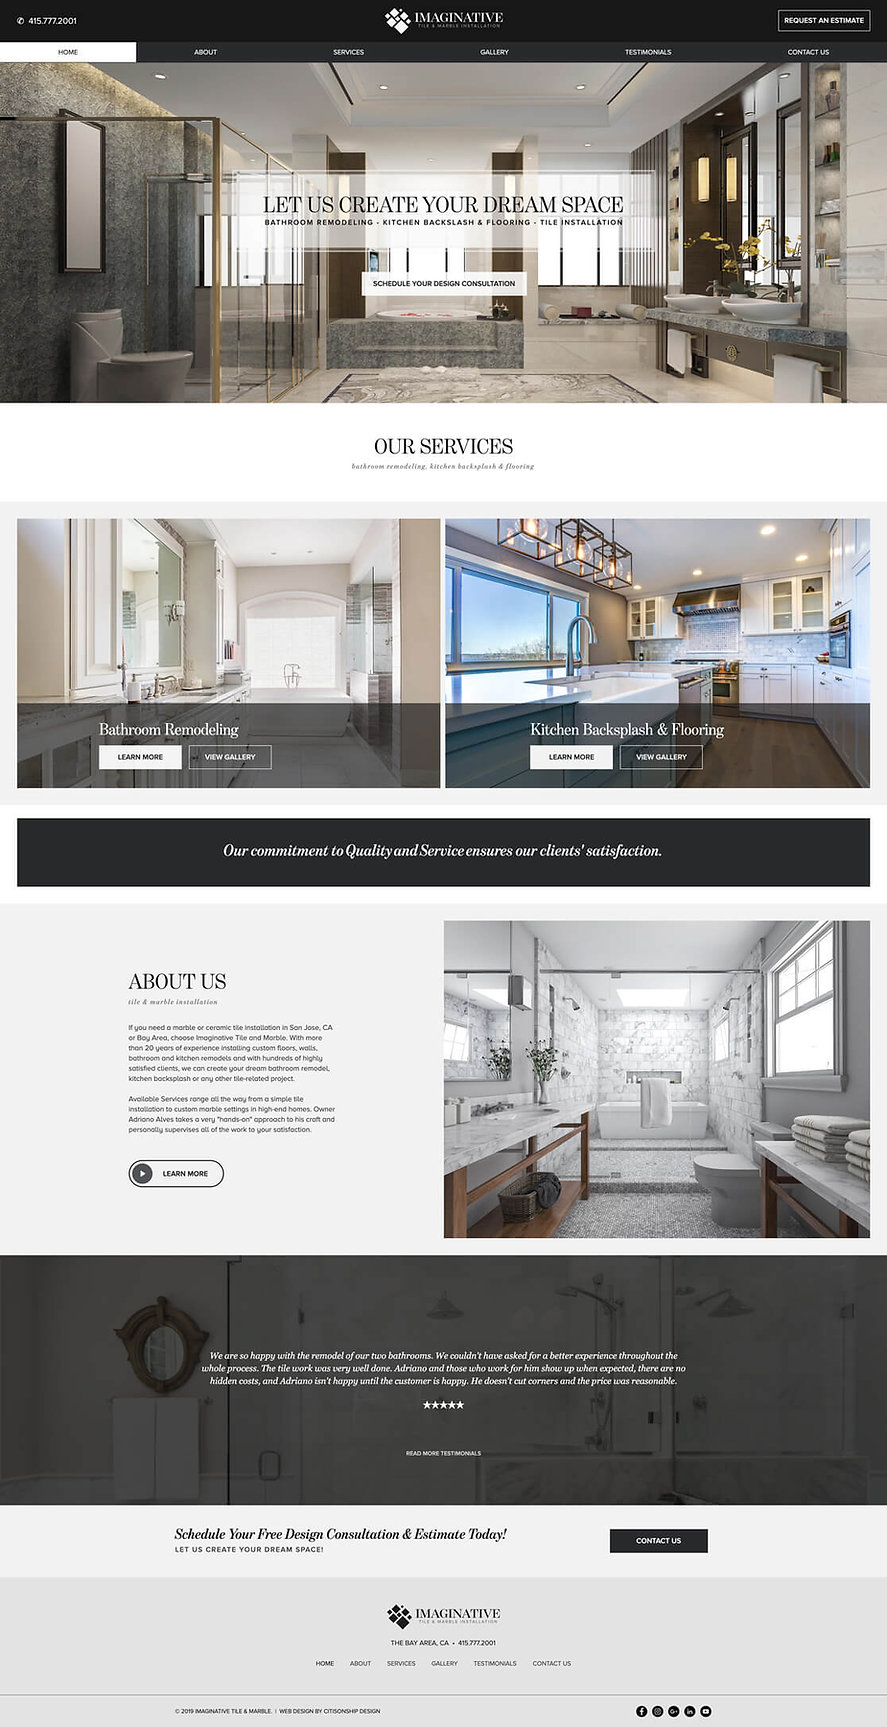 Website Design for Imaginative Tile & Marble